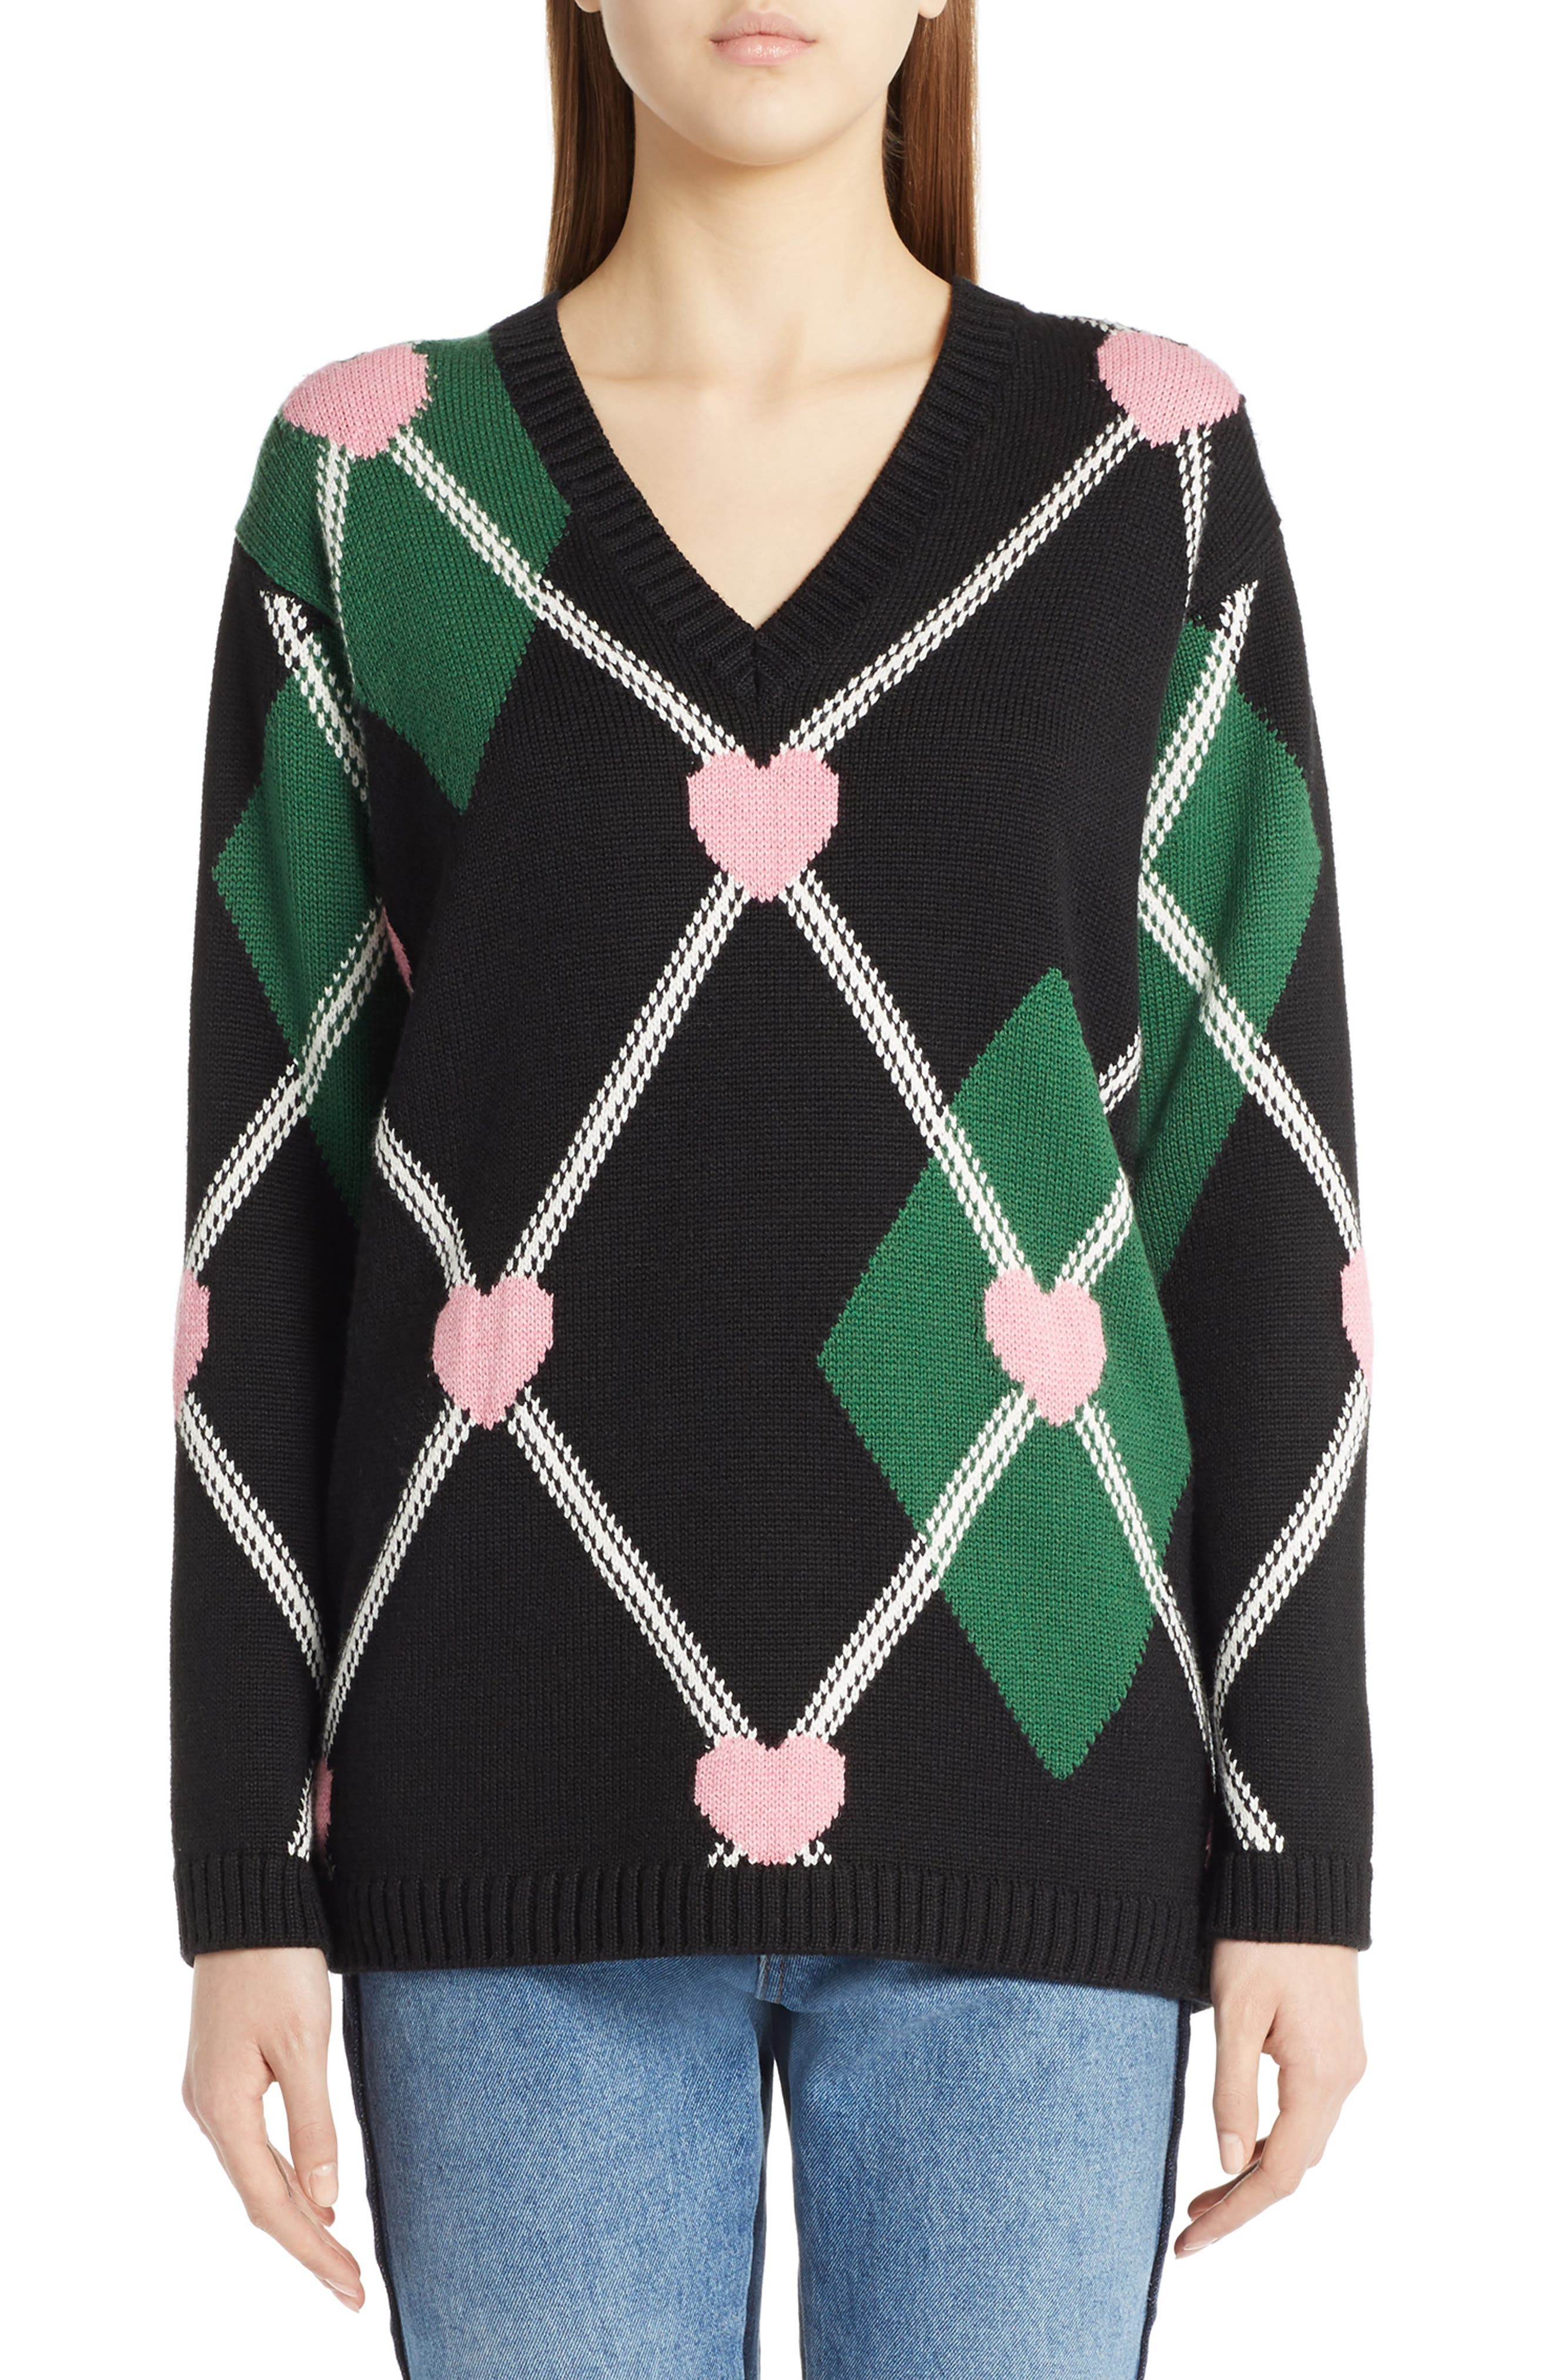 Argyle Heart Sweater,                         Main,                         color, 001